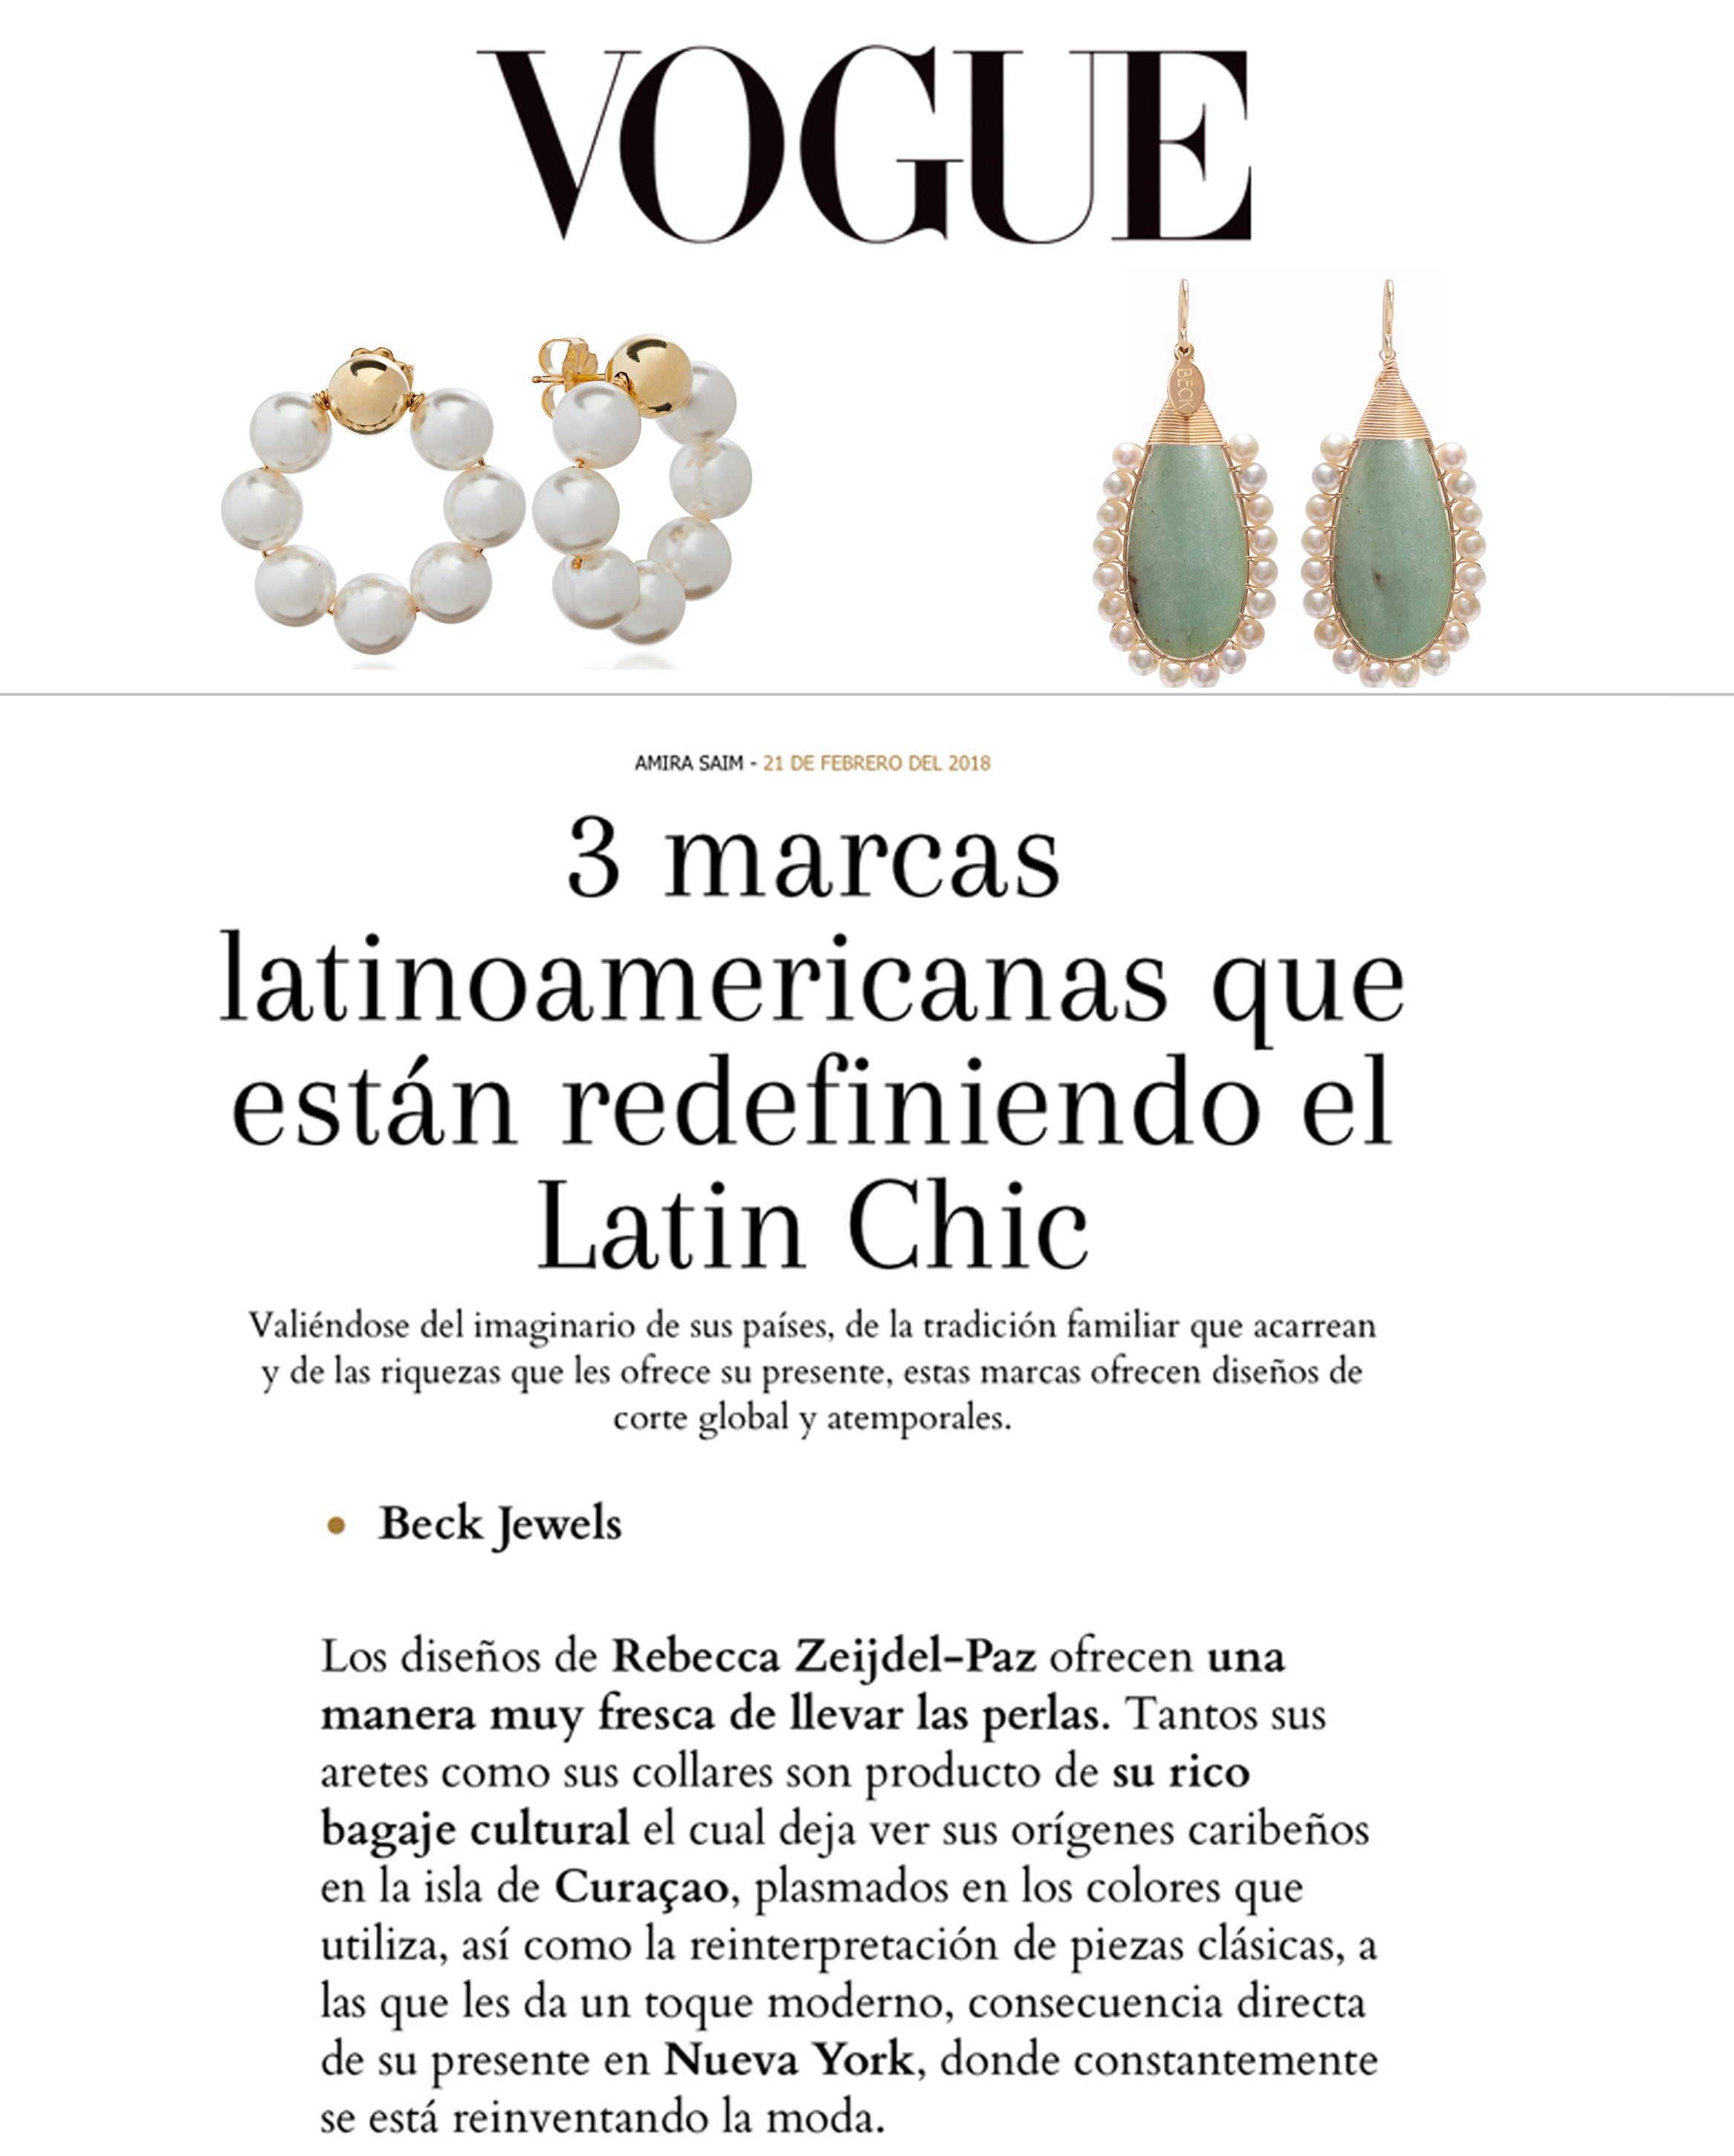 Beck Jewels Featured in Vogue Latin America